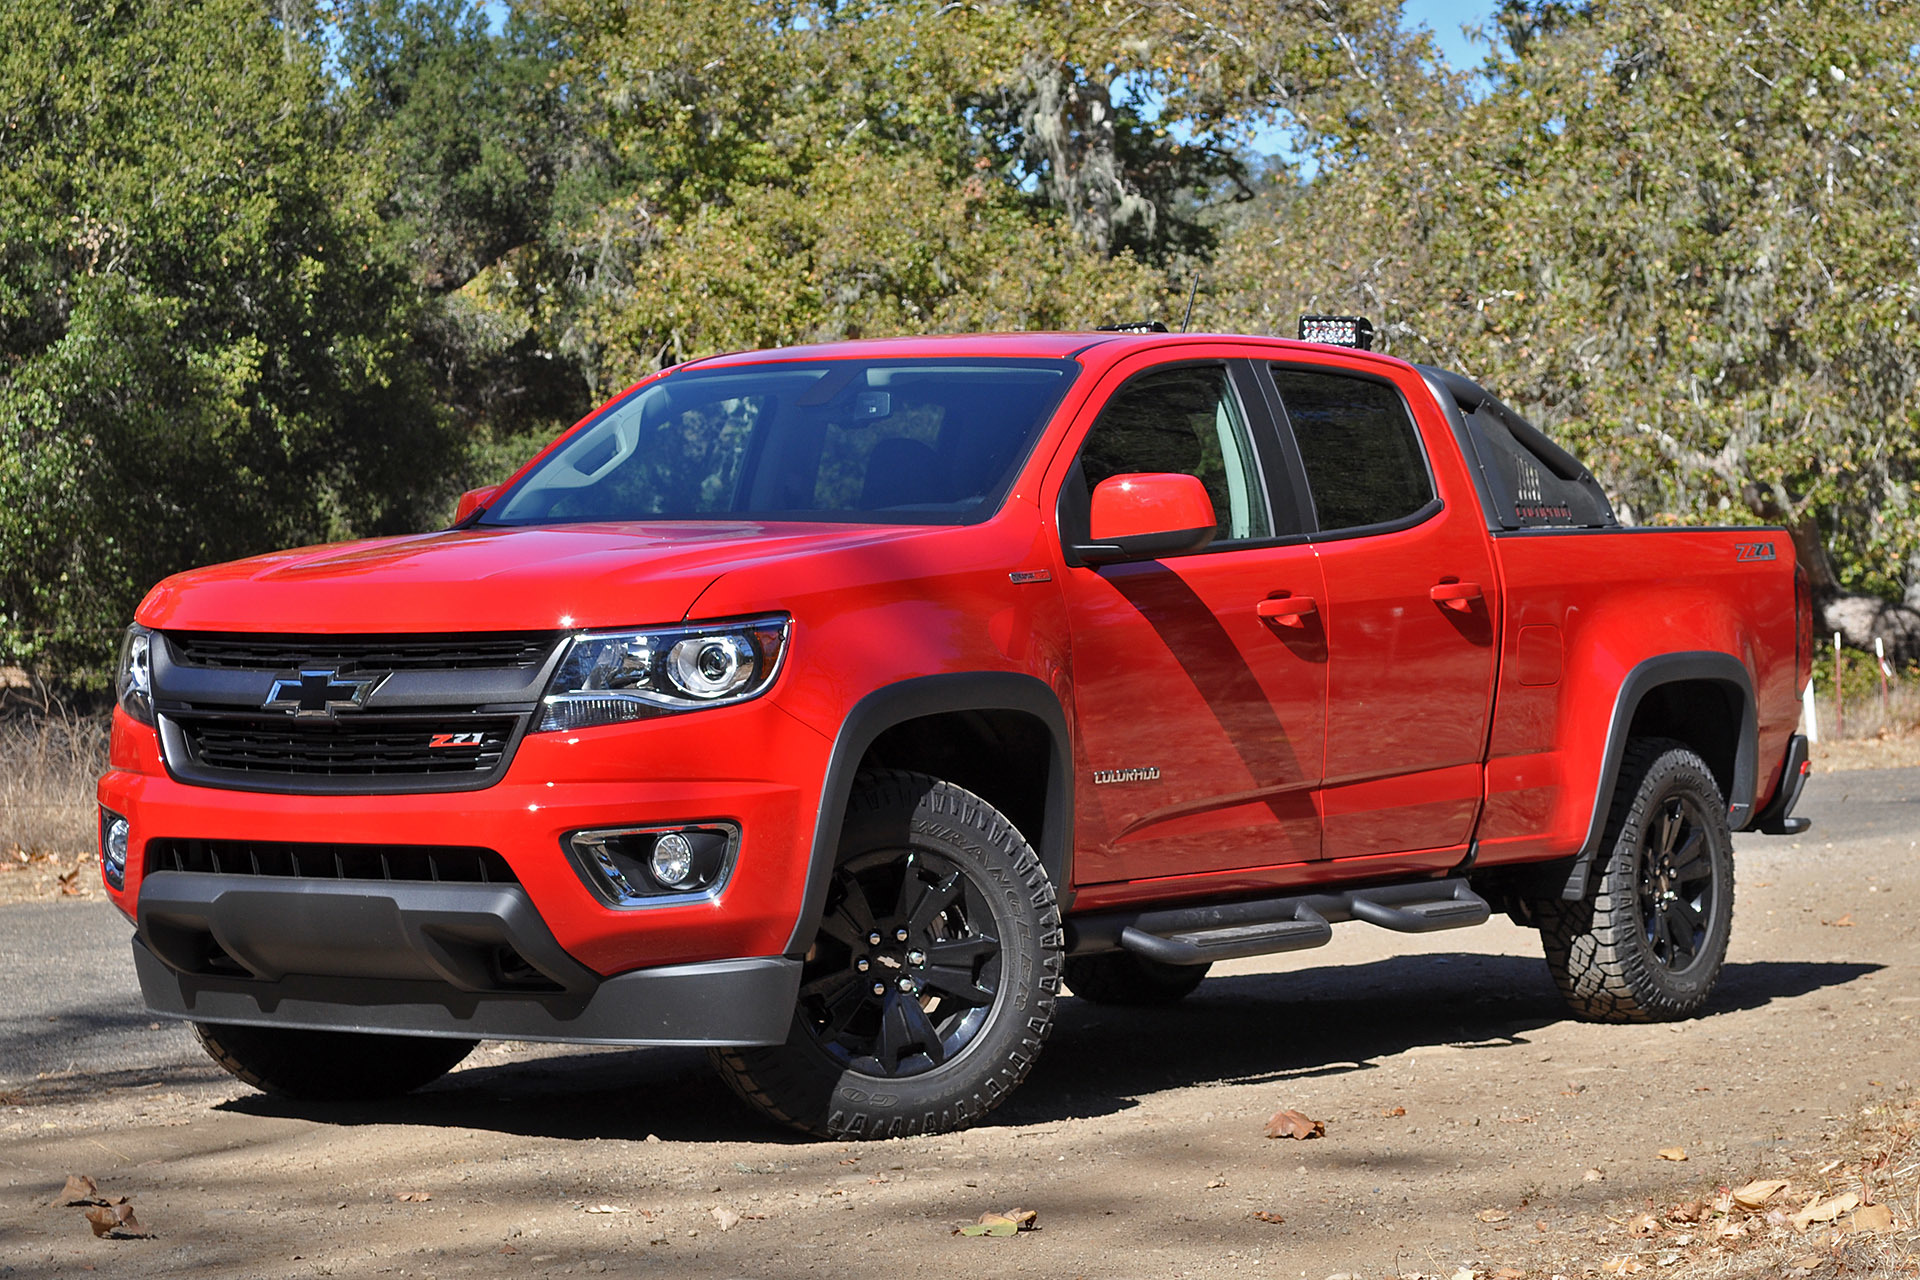 2016 Chevrolet Colorado Diesel First Drive [w/video] | Autoblog